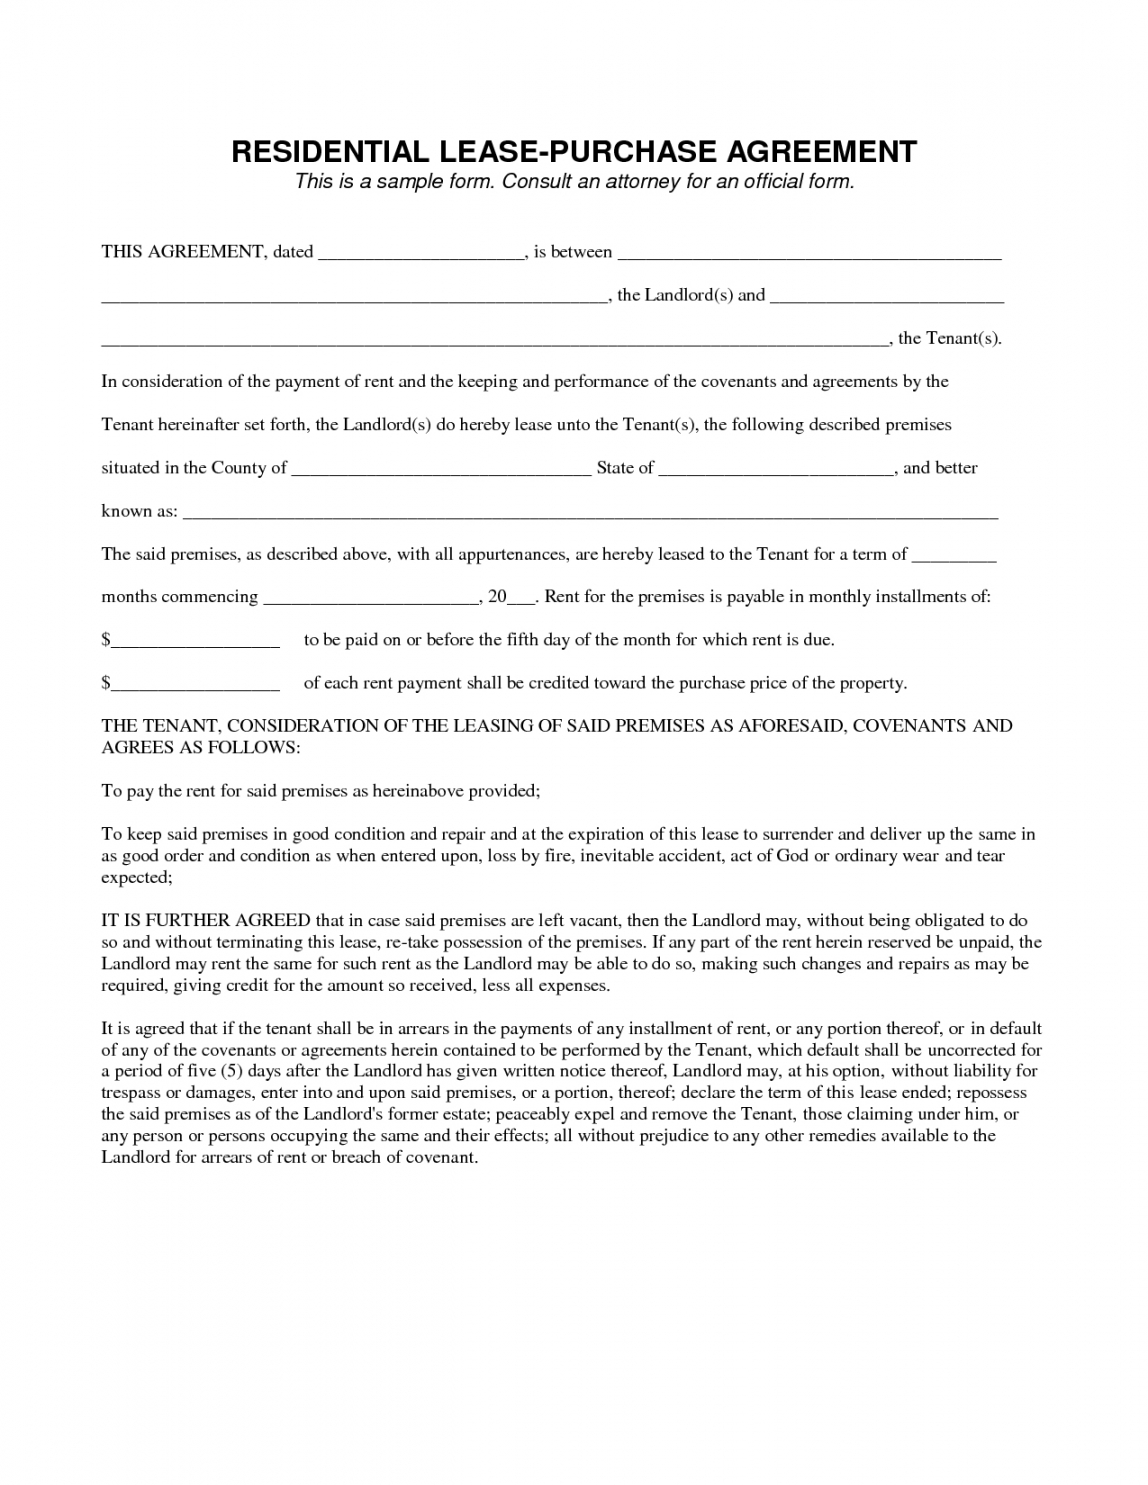 Free Rent To Own Home Agreement Template 25534 Lease To Own Contract Home Rent To Own Agreement Template